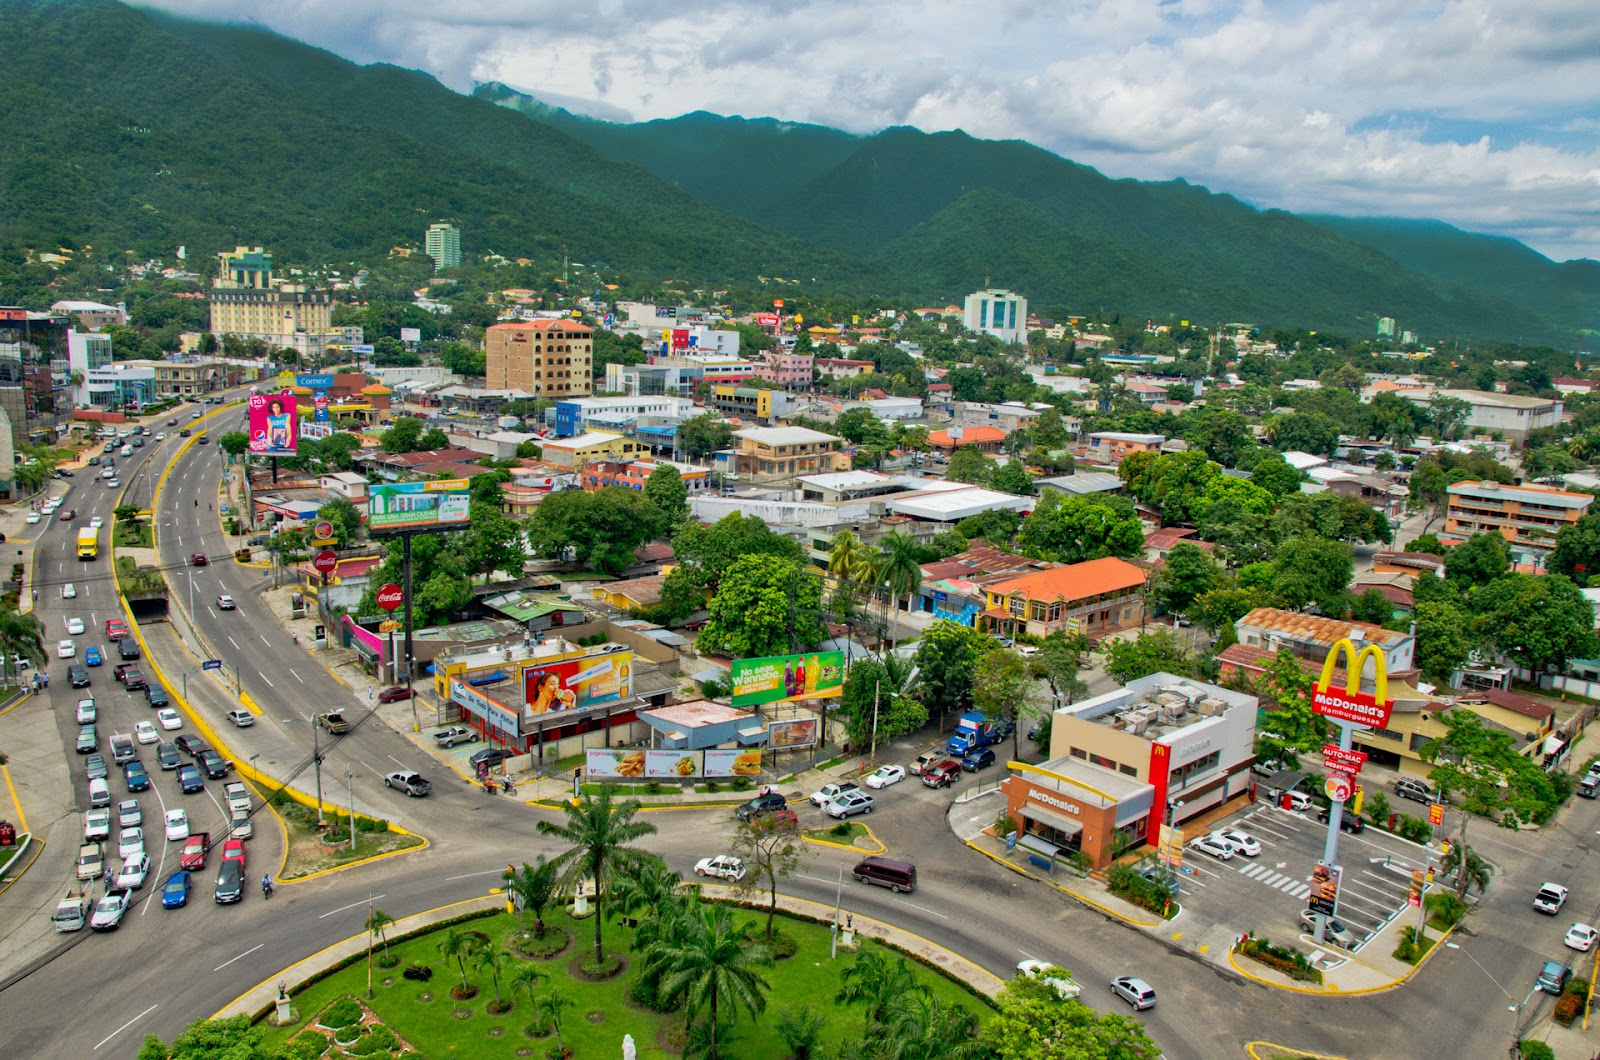 Avenida-Circunvalacion-San-Pedro-Sula-Honduras-A-Good-Base-for-Entering-Honduras